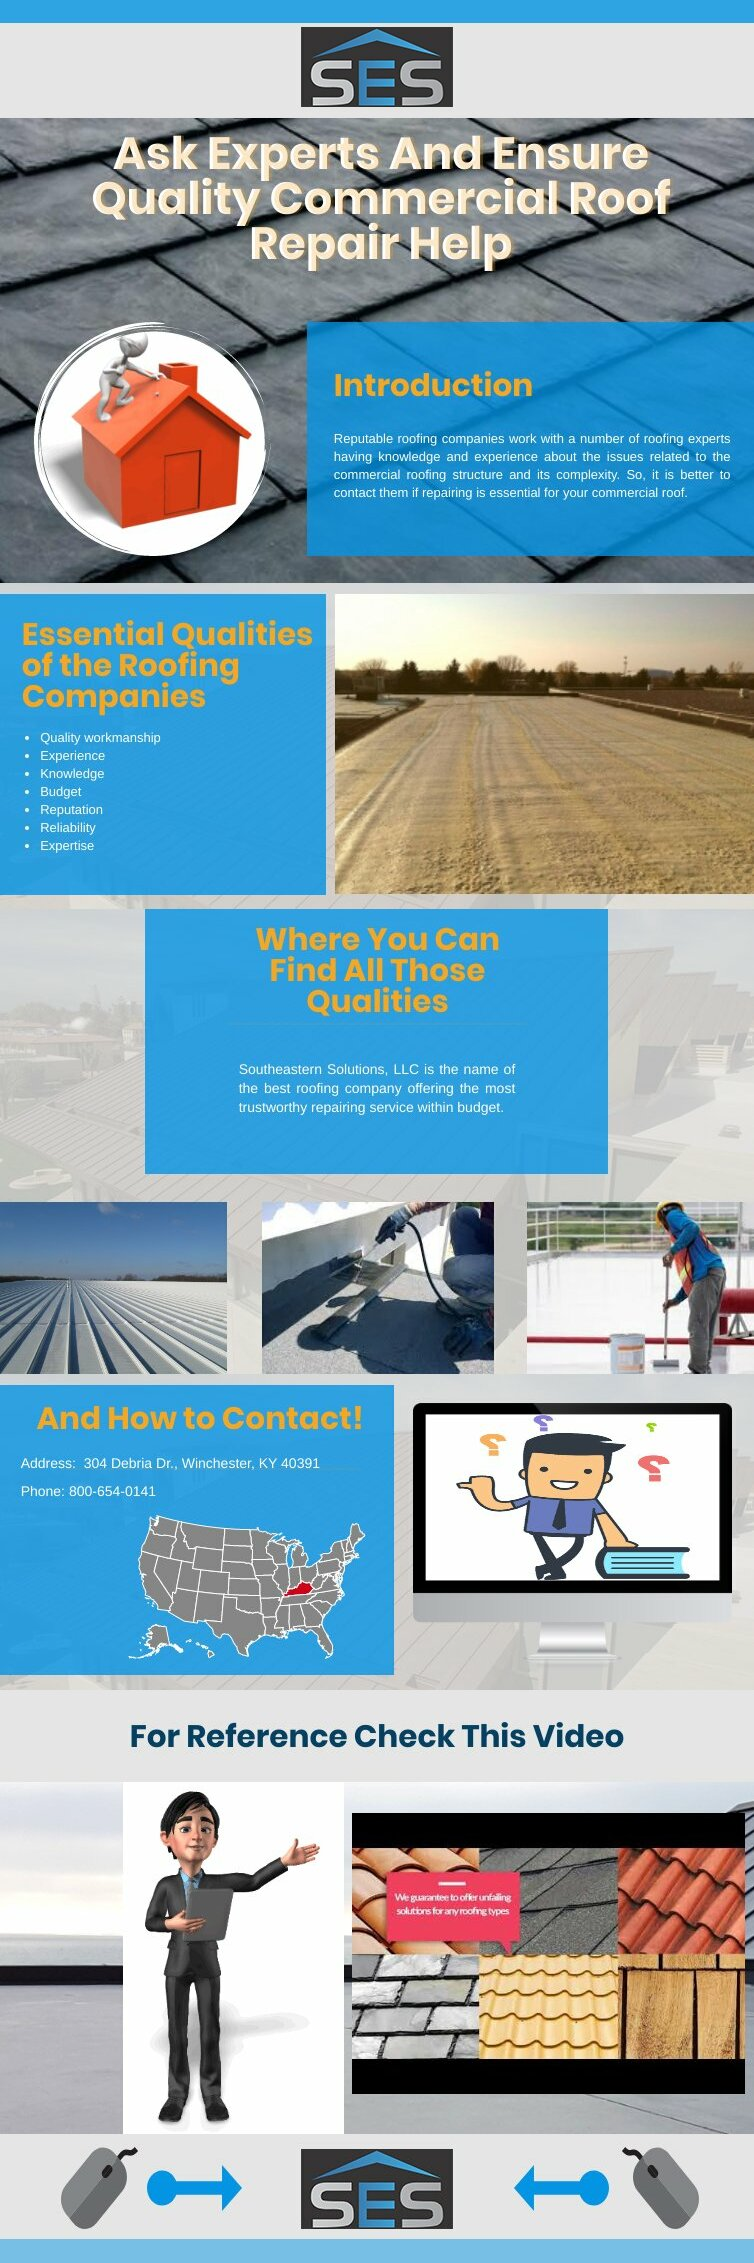 Ask Experts And Ensure Quality Commercial Roof Repair Help Piktochart Visual Editor